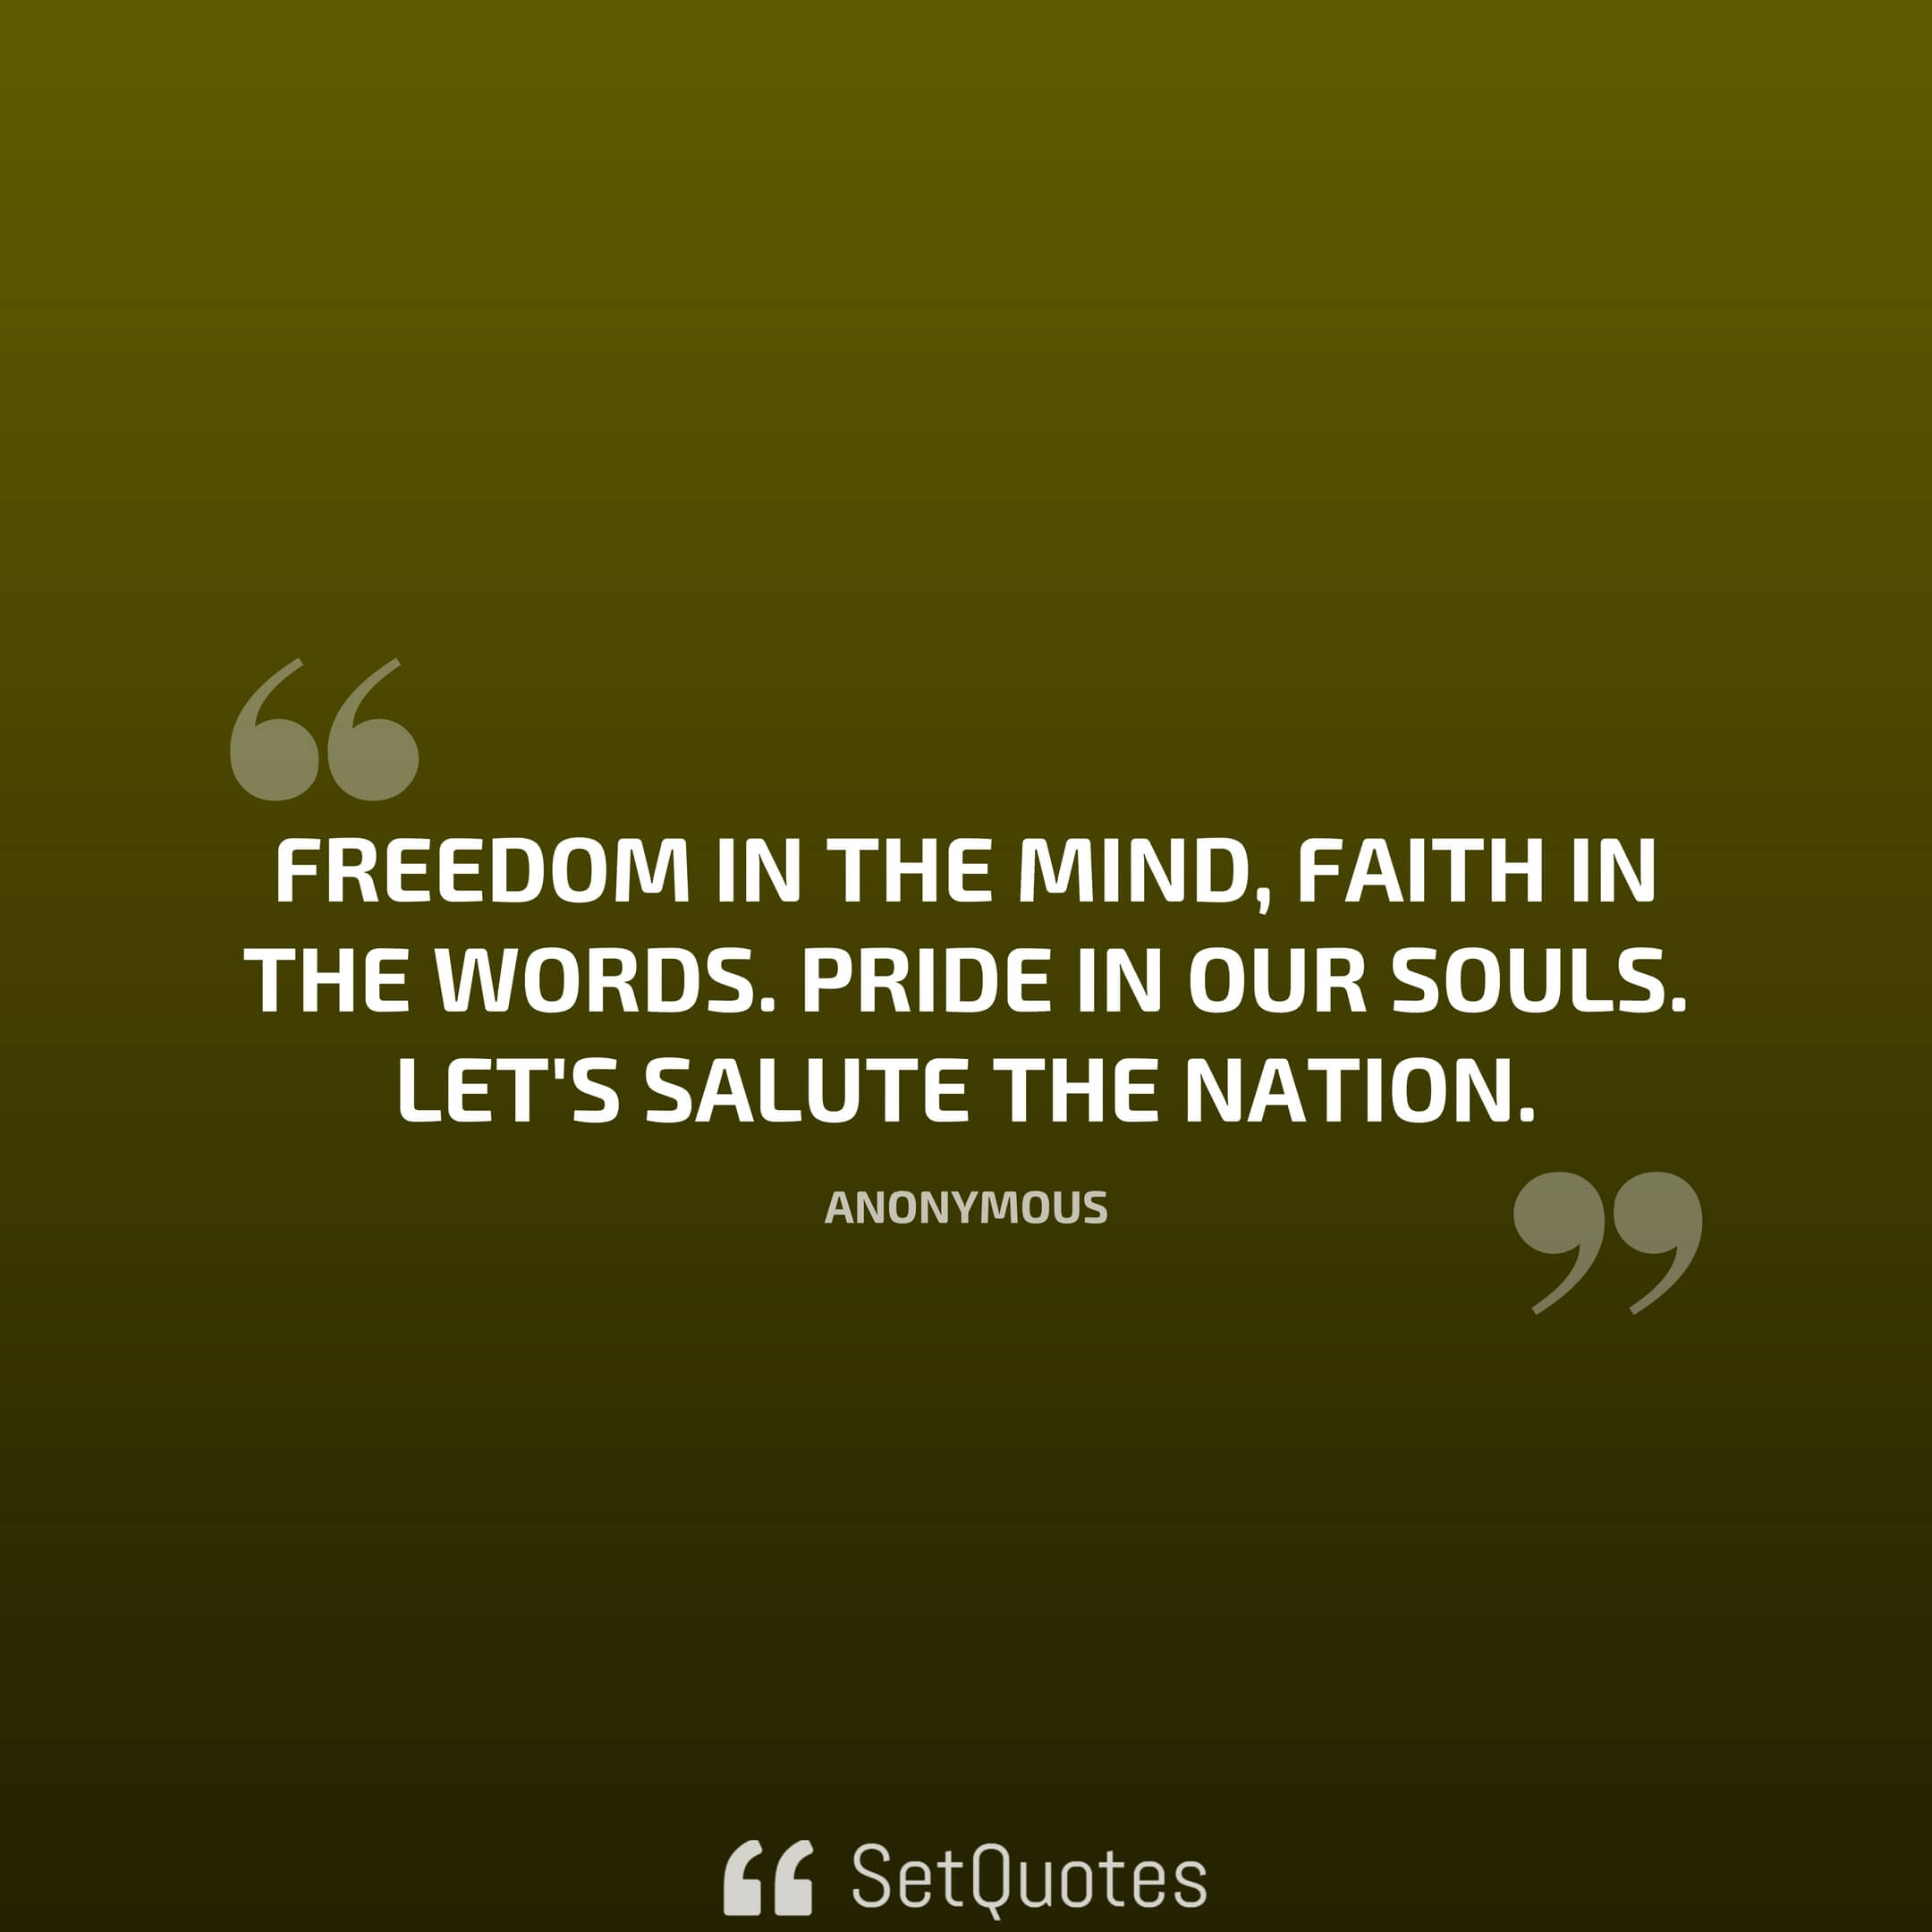 115 Best Independence Day Quotes And Sayings for Inspiration